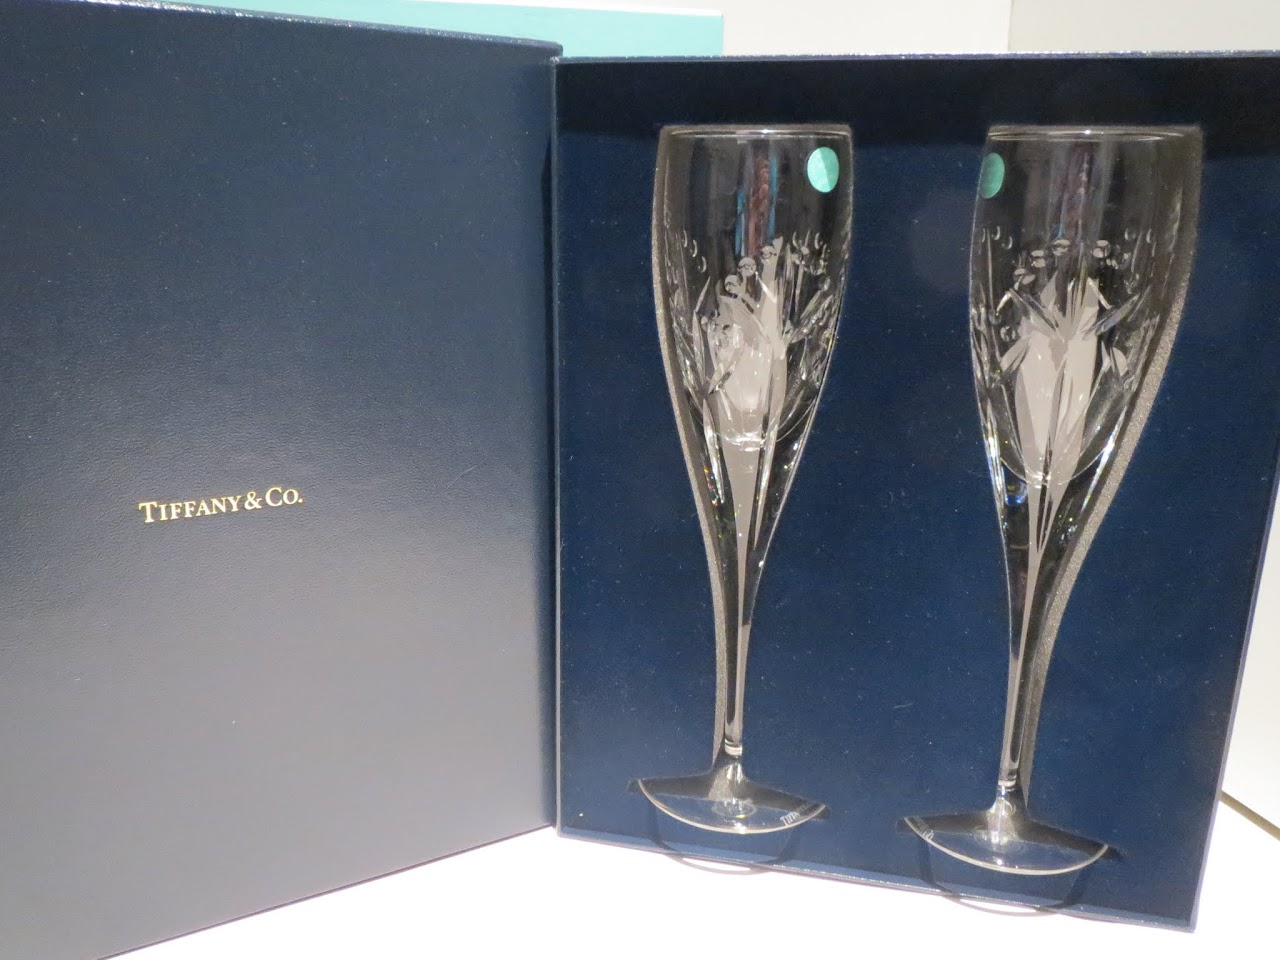 Tiffany & Co. Champagne Flutes